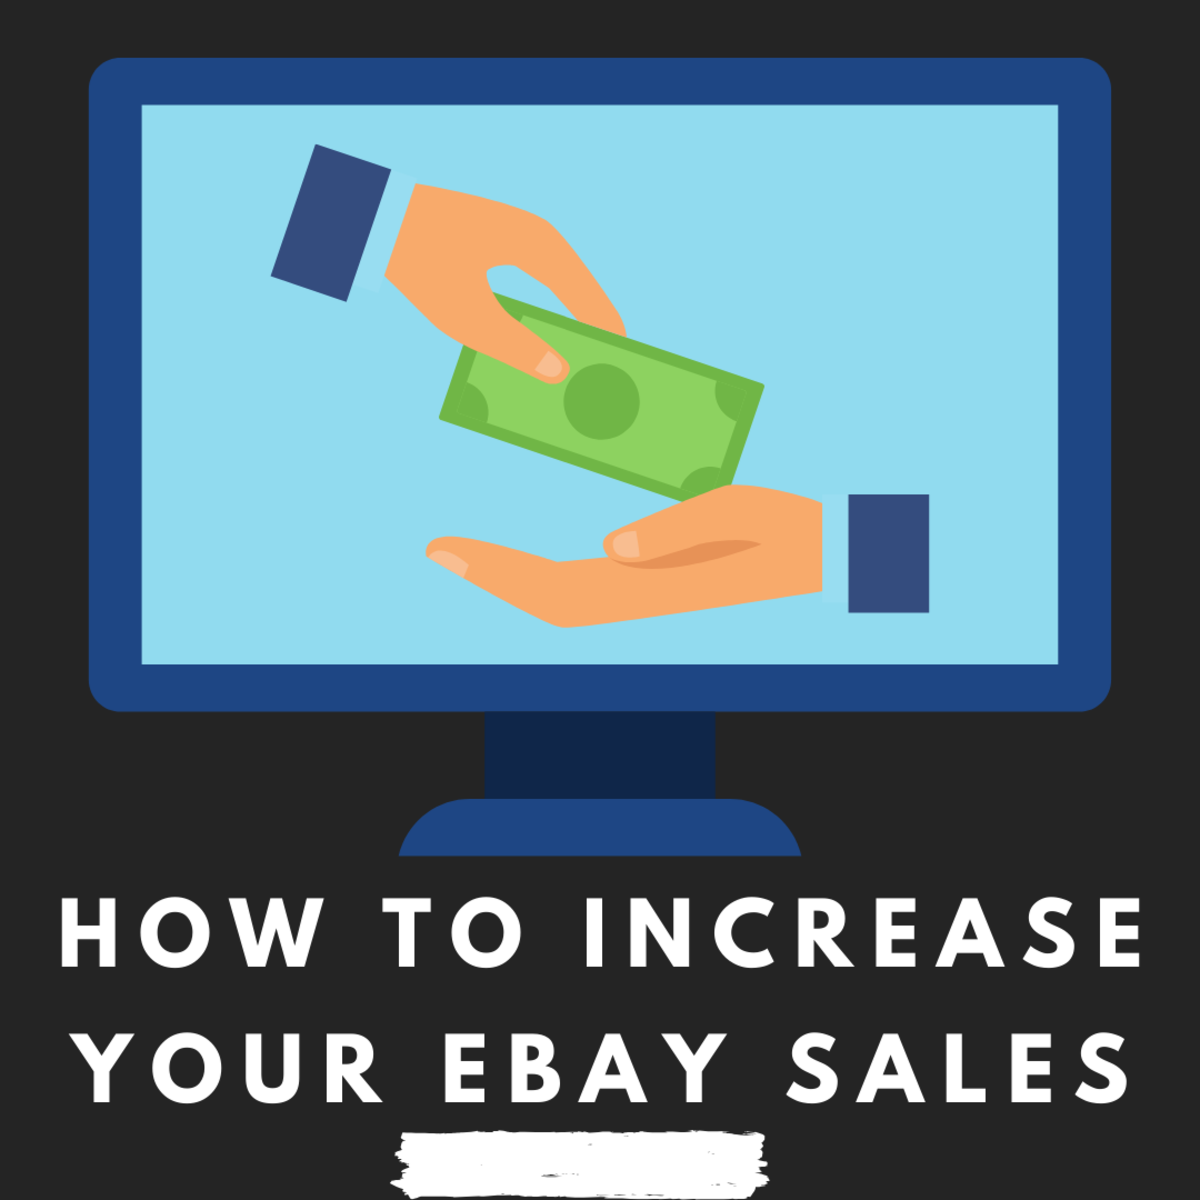 Learn how to increase your eBay sales to make extra money.